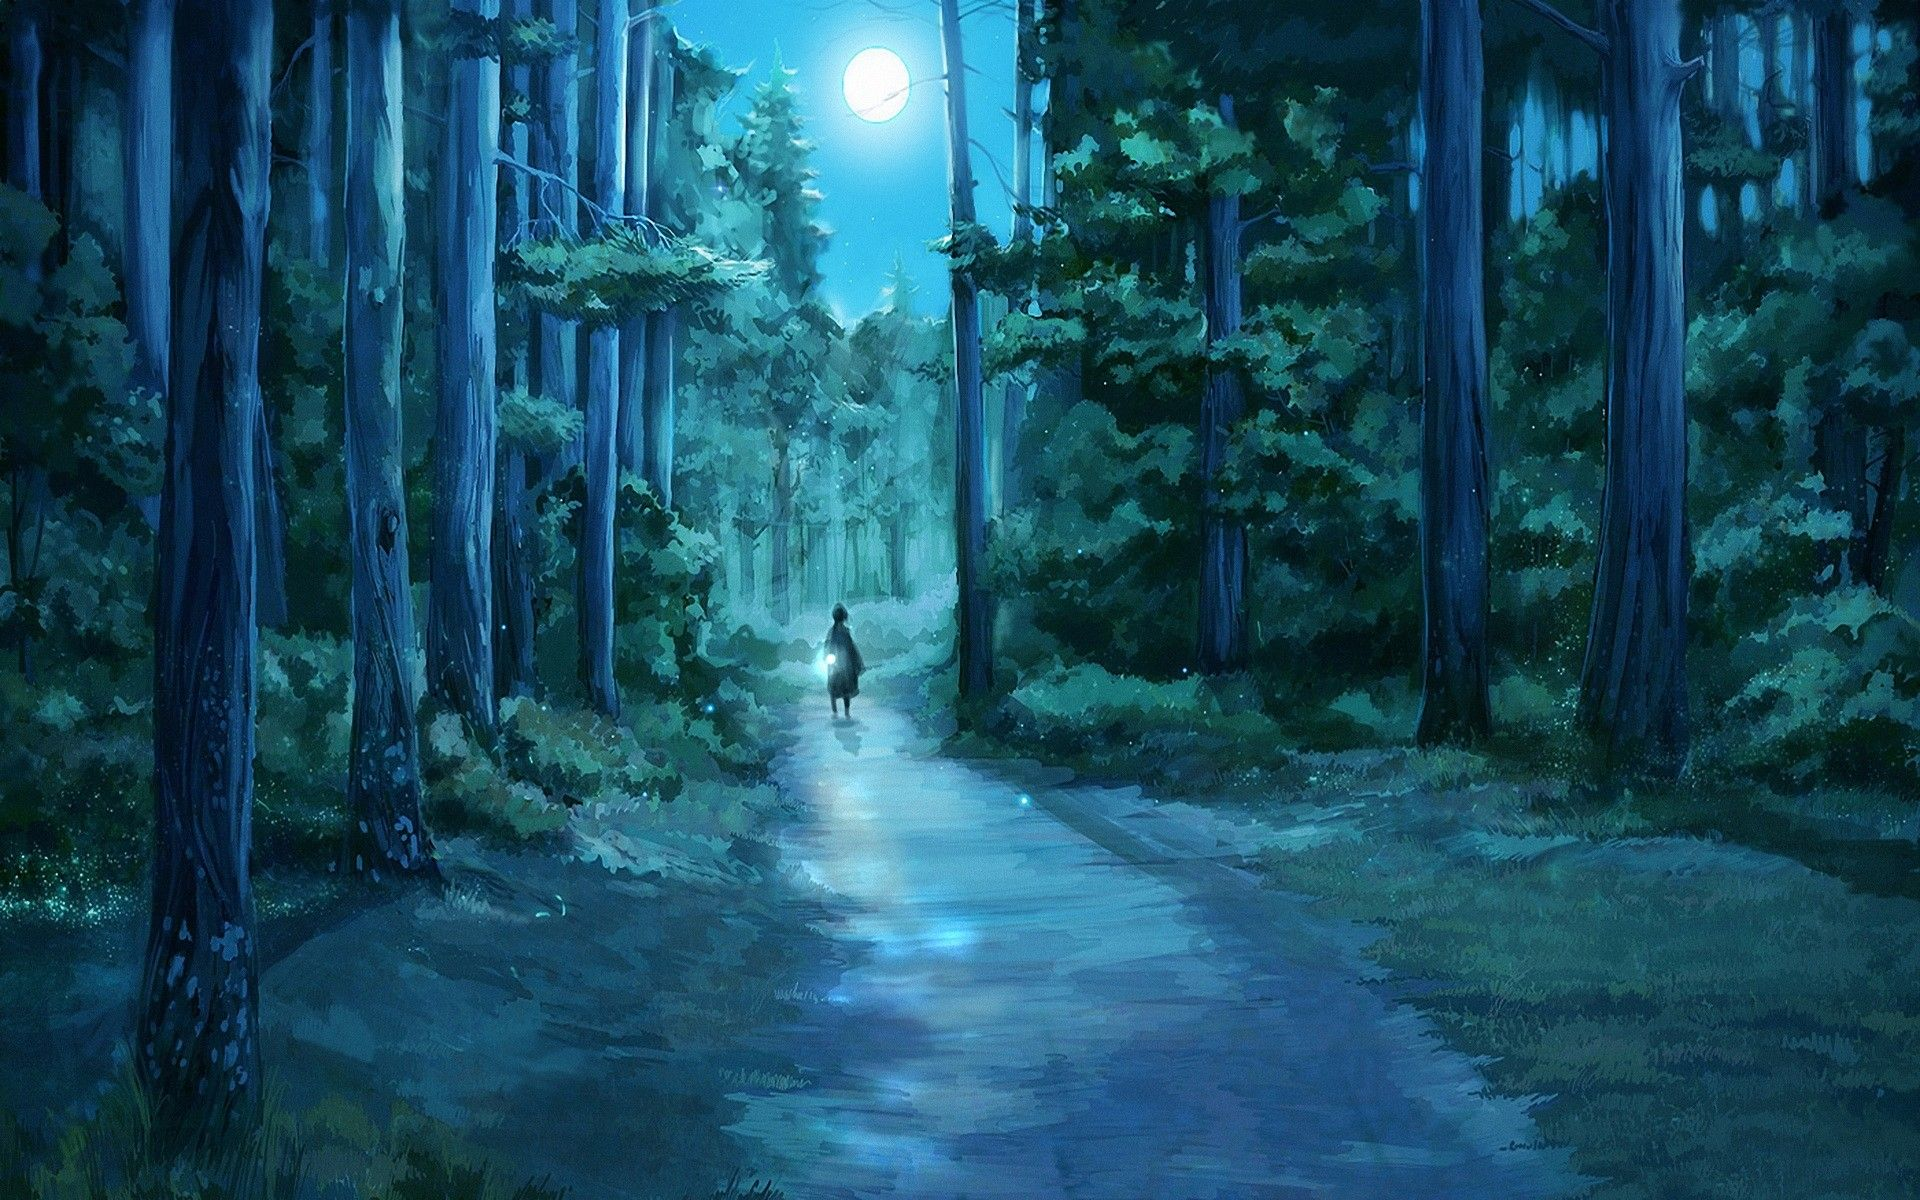 Anime Forest Wallpapers - Top Free Anime Forest ...